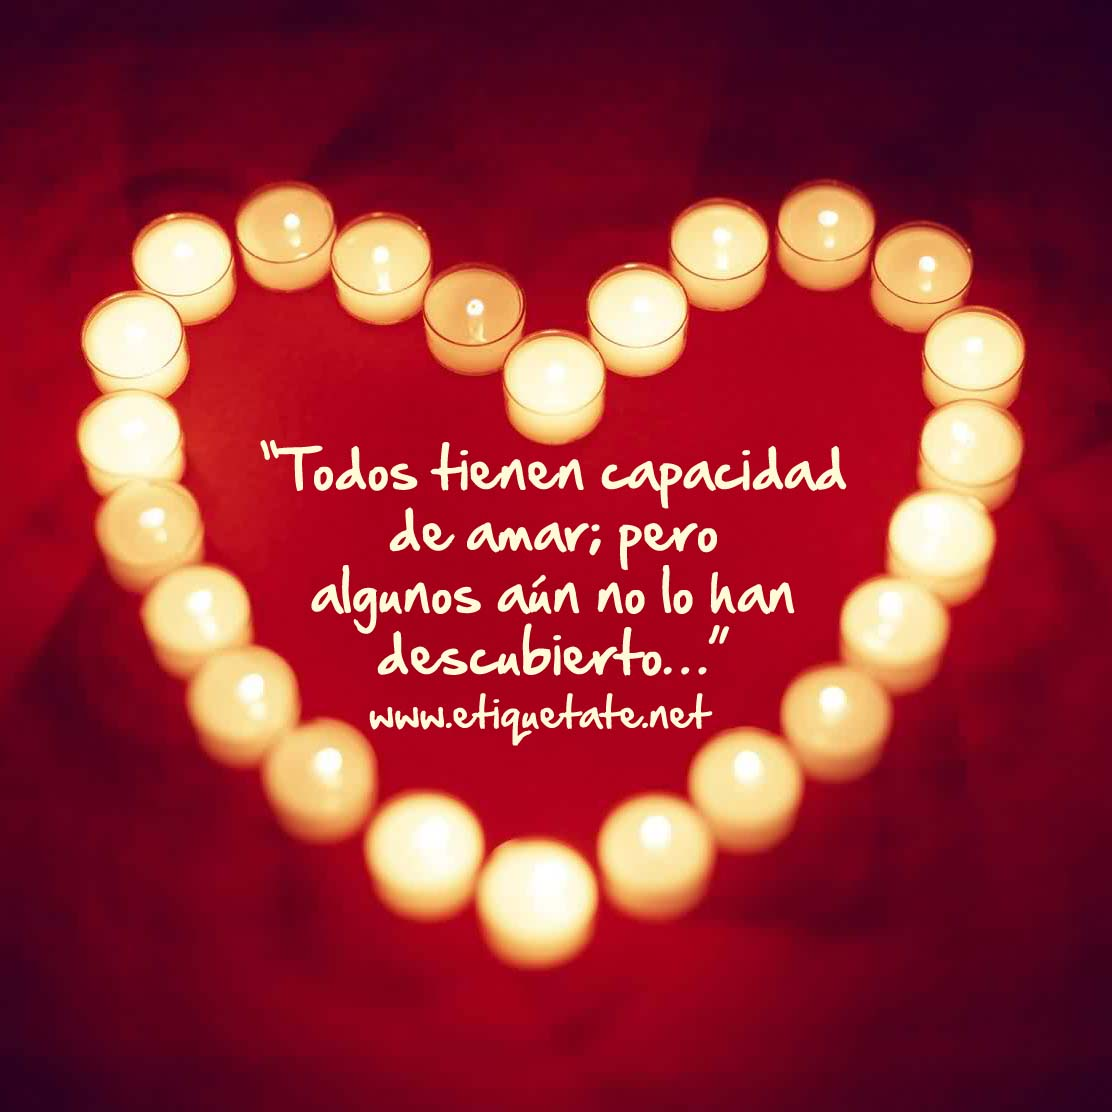 Frases Para San Valentin Cortas 2 Quotes Links